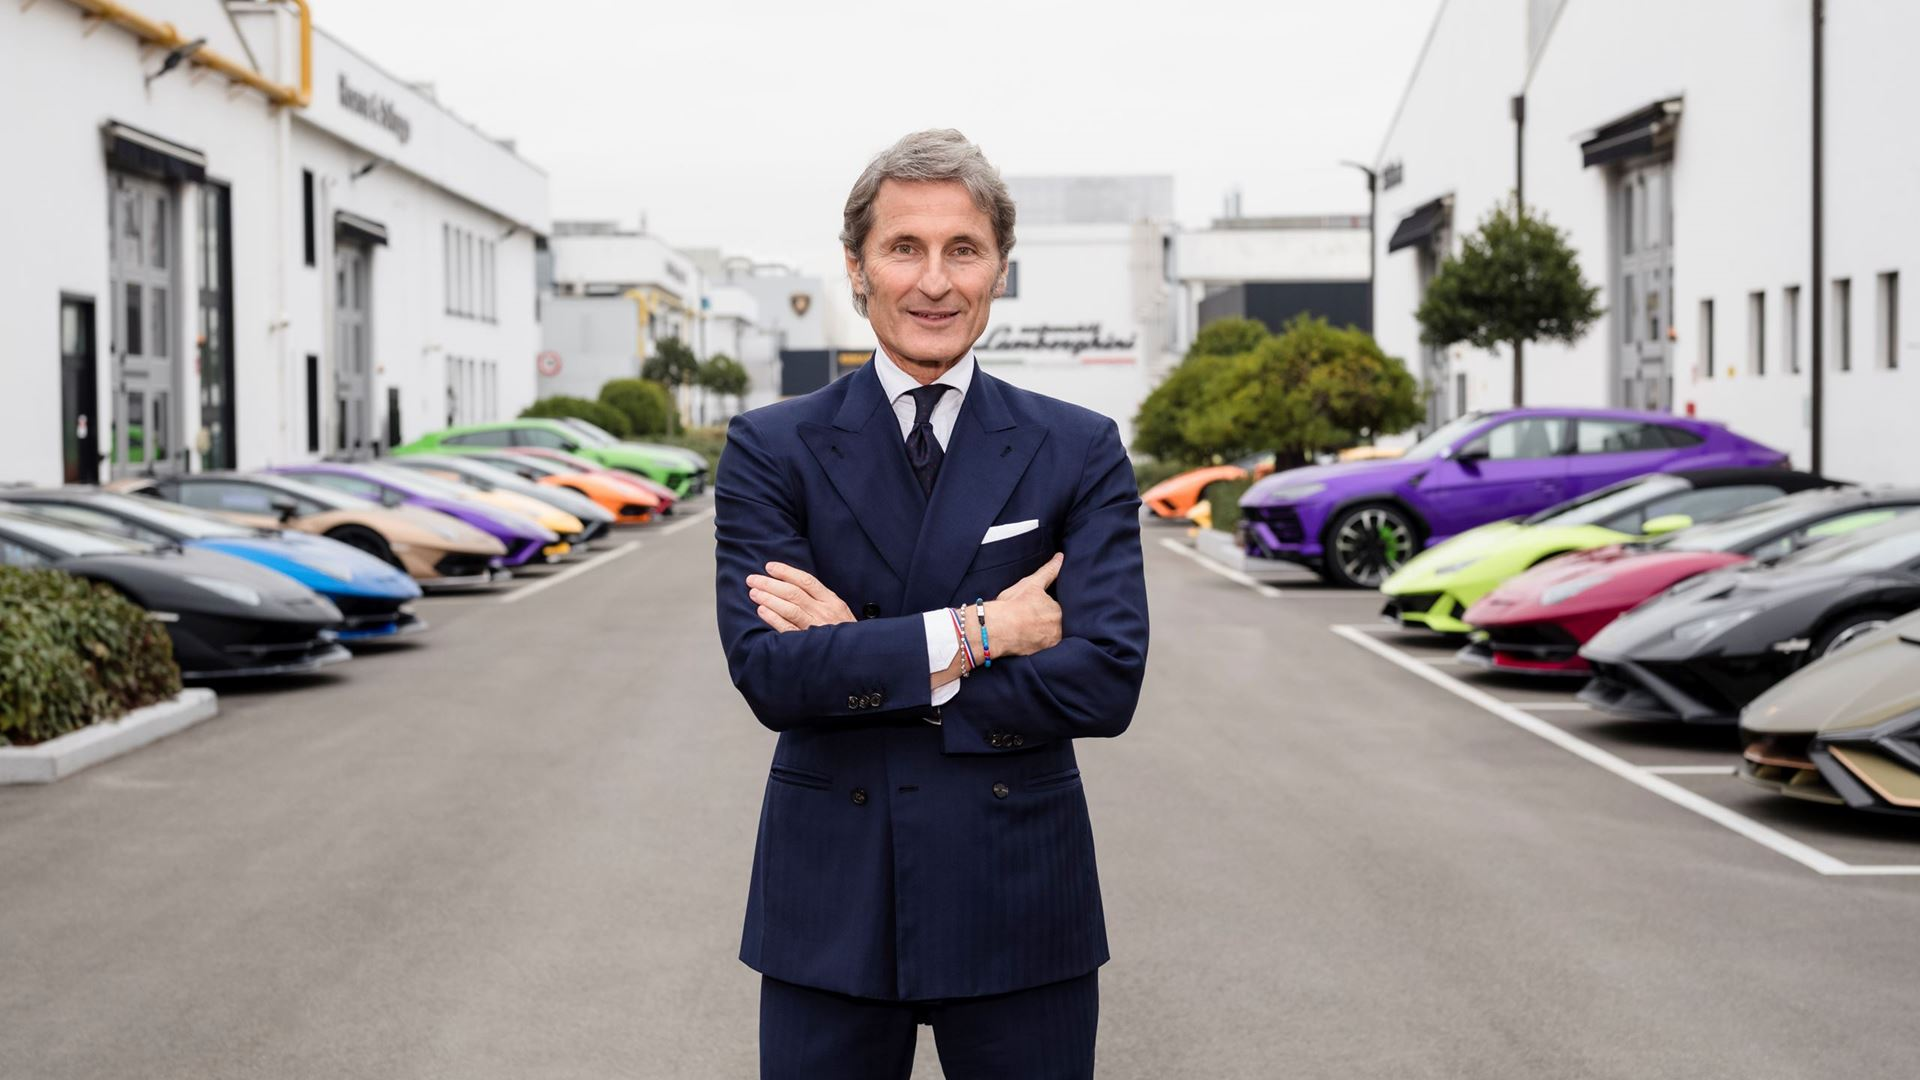 Automobili Lamborghini closes 2020 with 7,430 cars delivered and six new product launches - Image 6